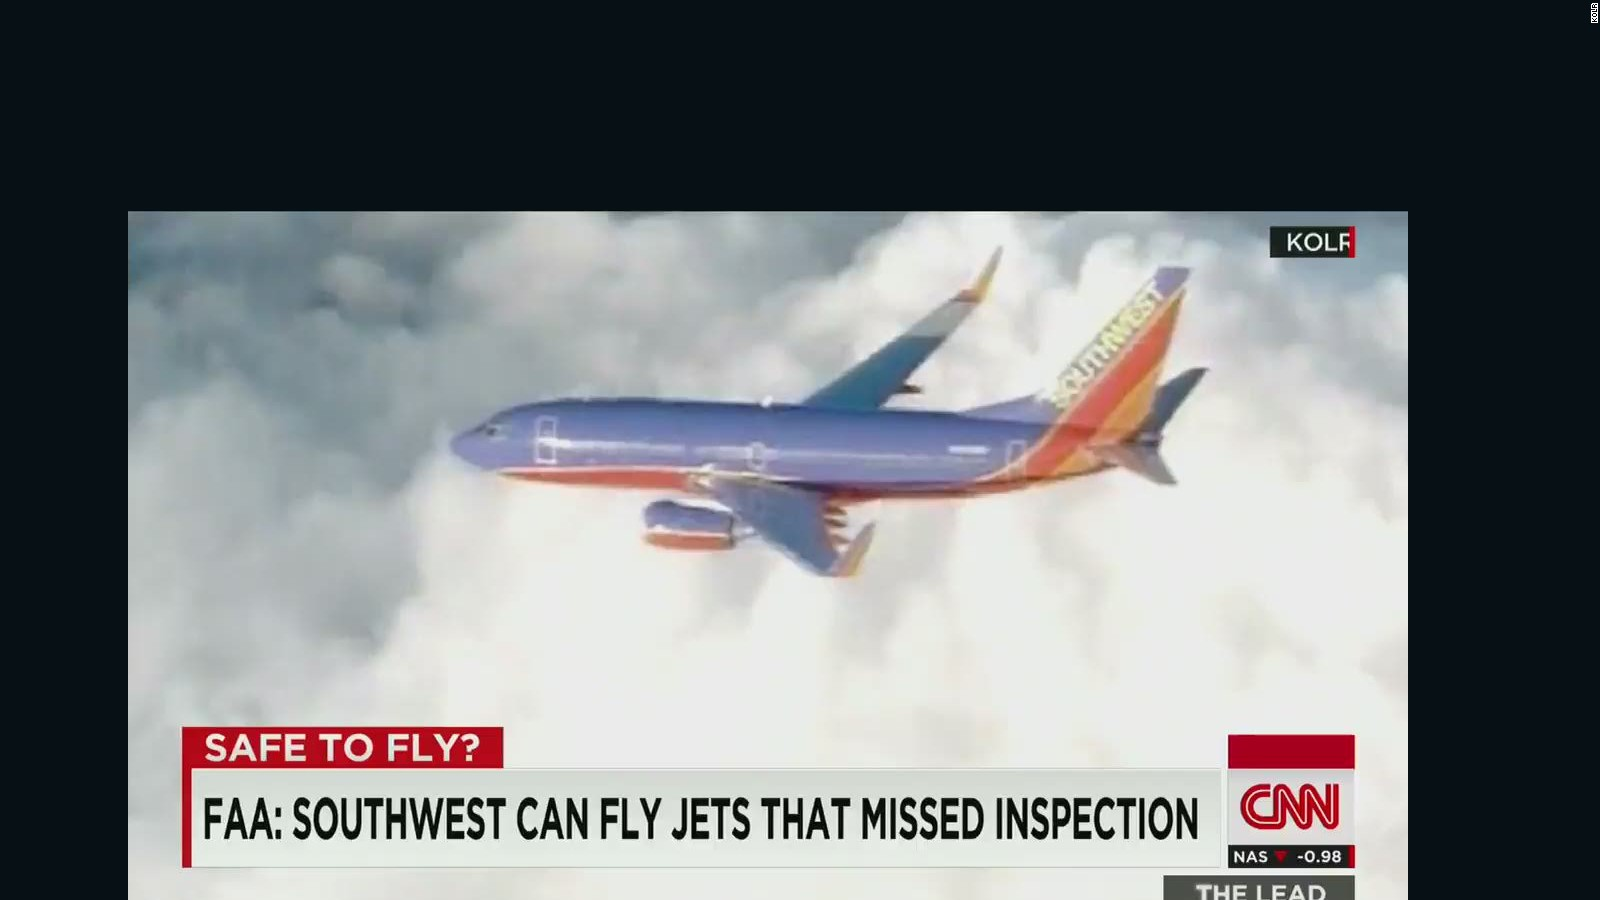 human resource problems for southwest airlines Hrm 530 week 2 dq strategic approach assess southwest airlines' strategic approach to human resource (hr) management determine how its strategy.